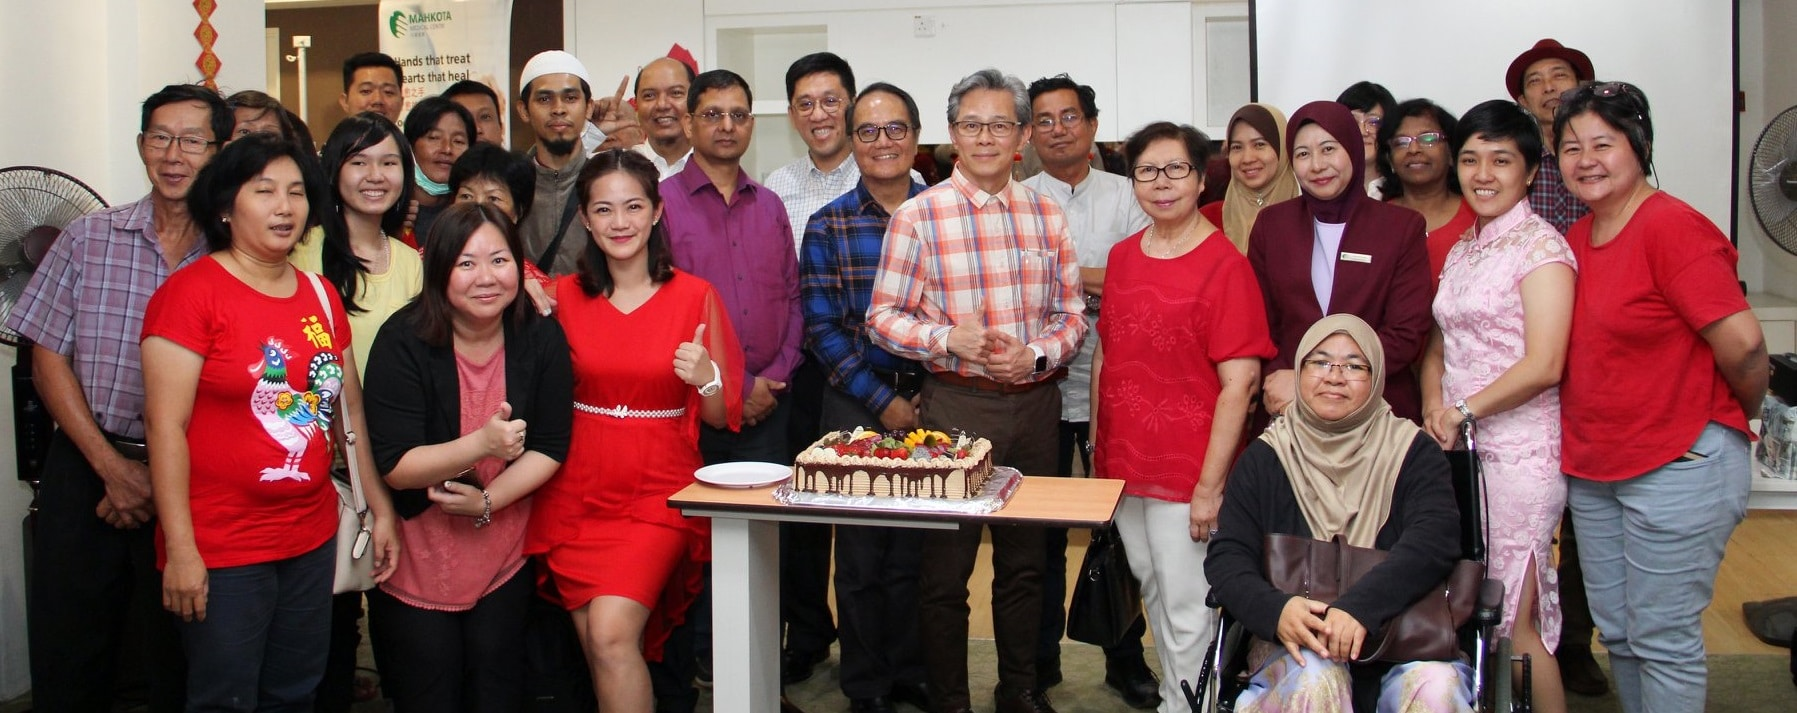 2019 CNY & Birthday Celebration for Cancer Support Group